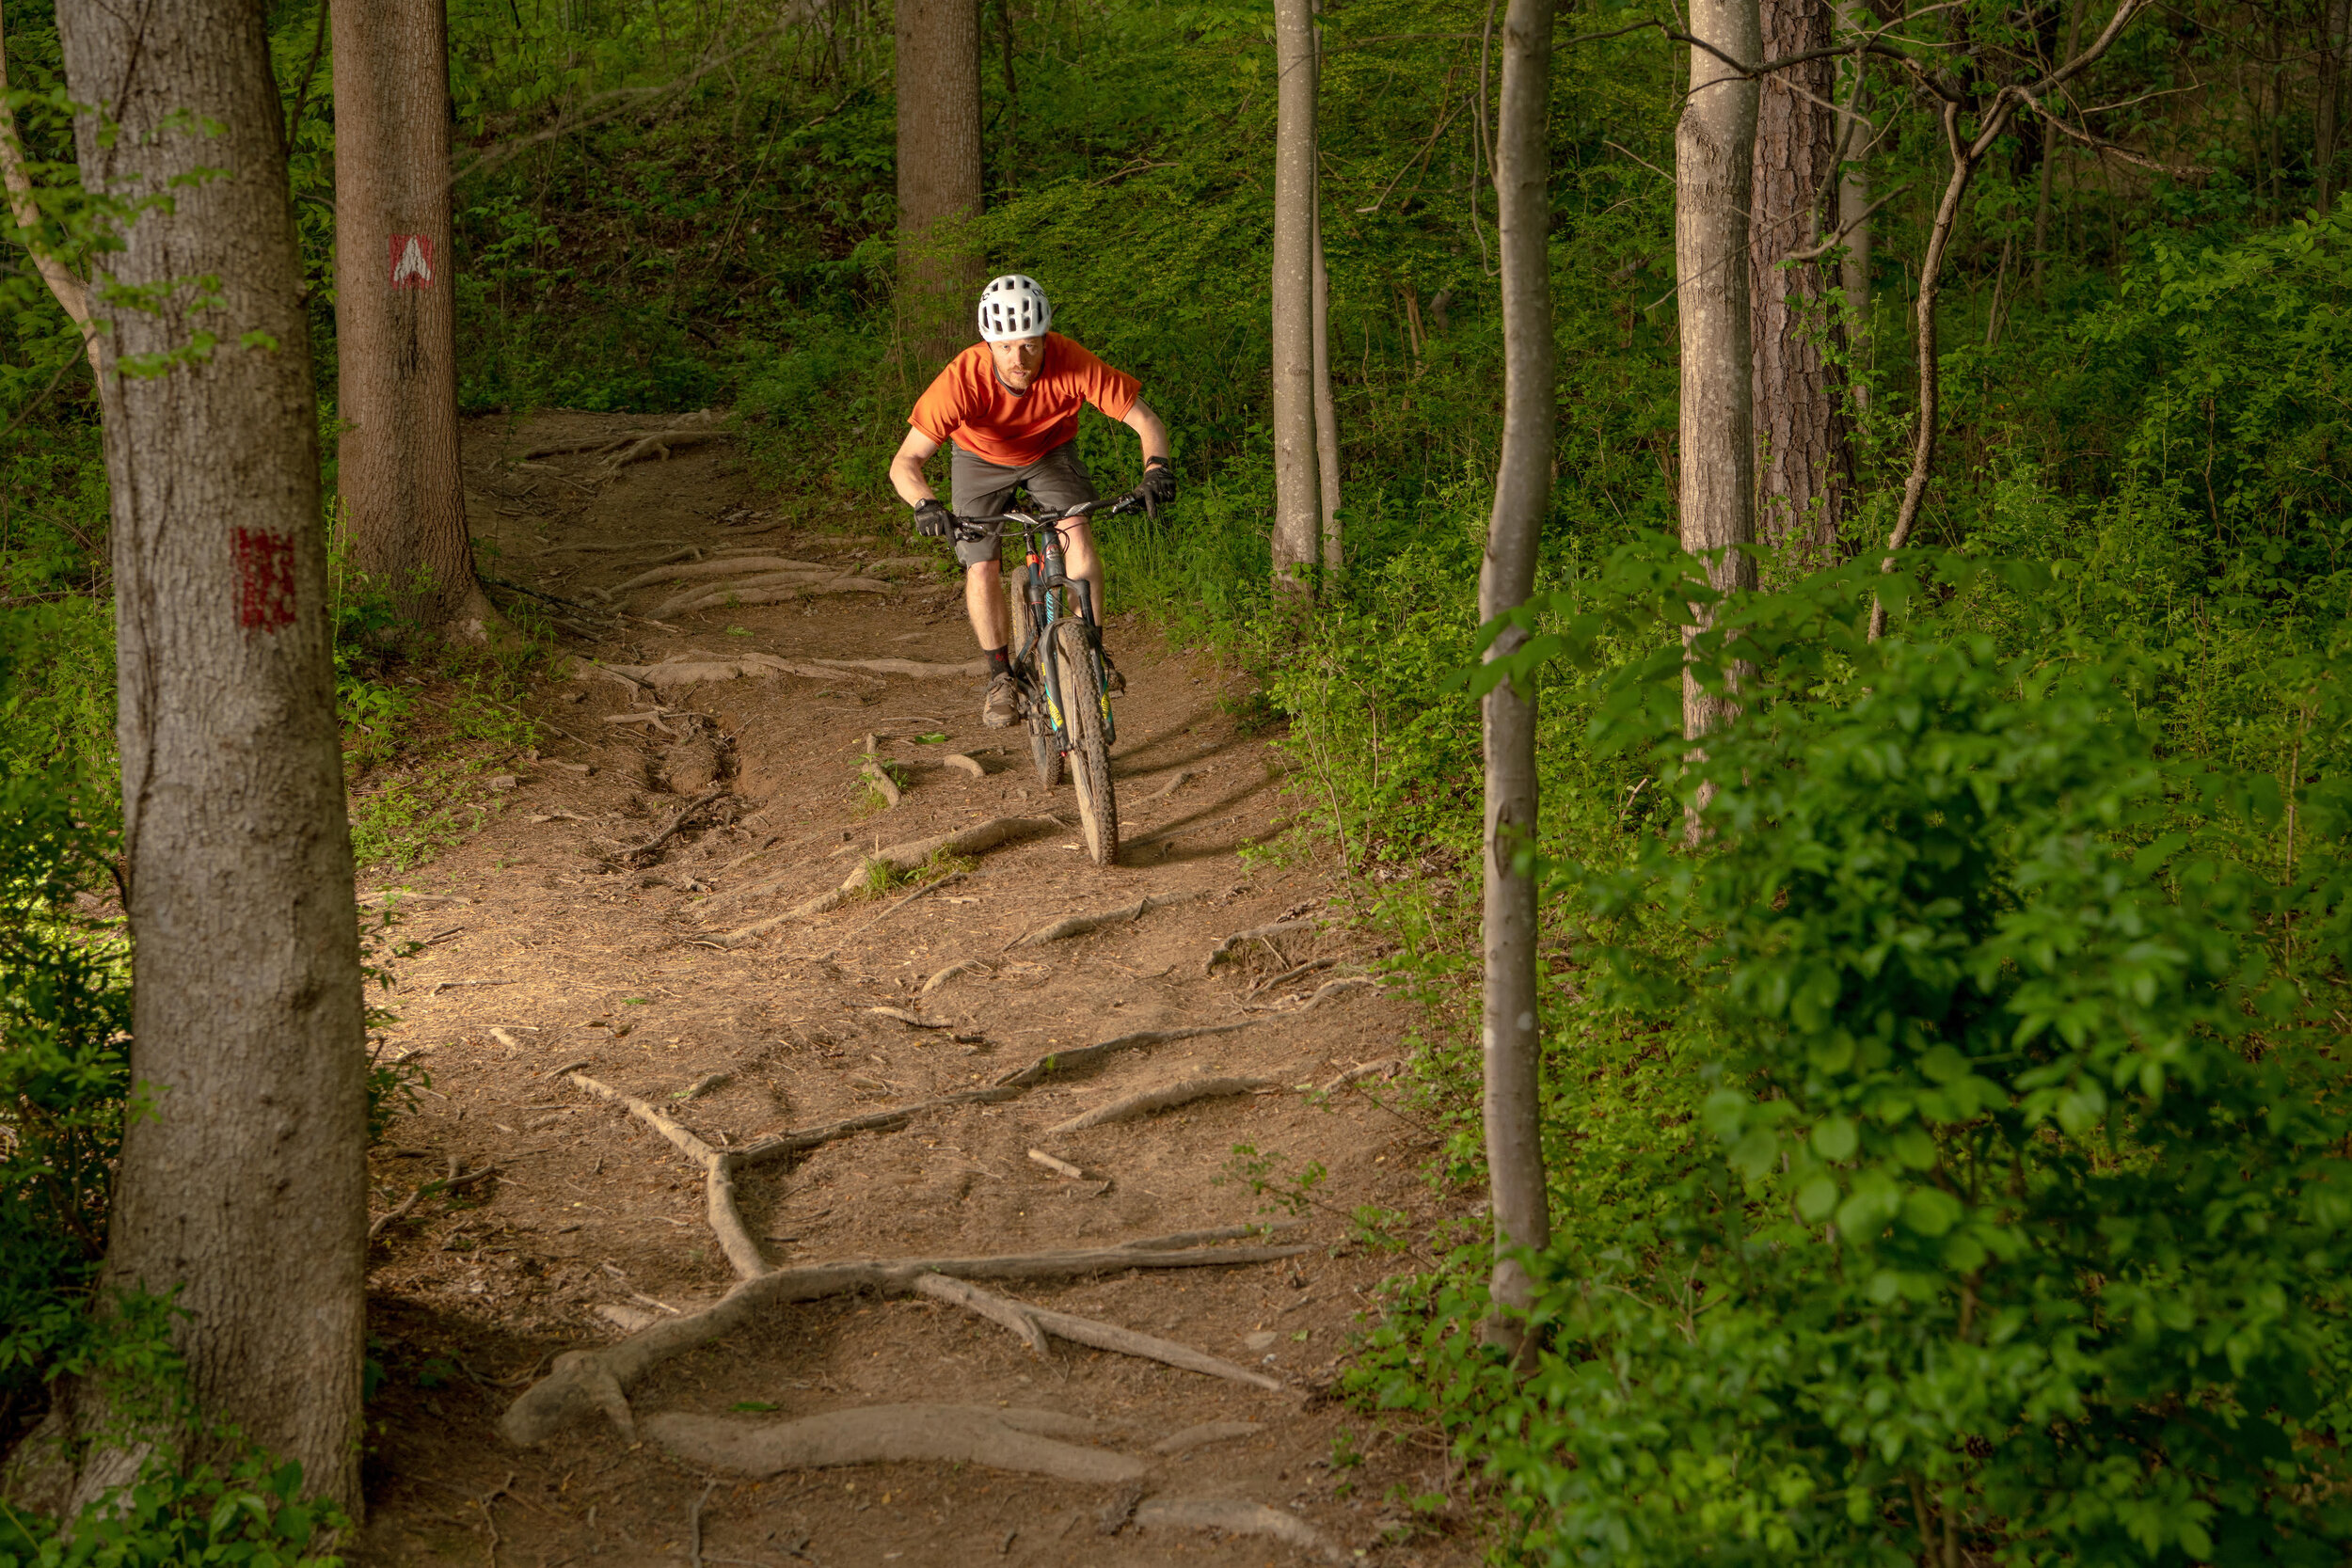 Wayne National Forest is employing the Environmental Impact Bond model to finance a new mountain bike trail.